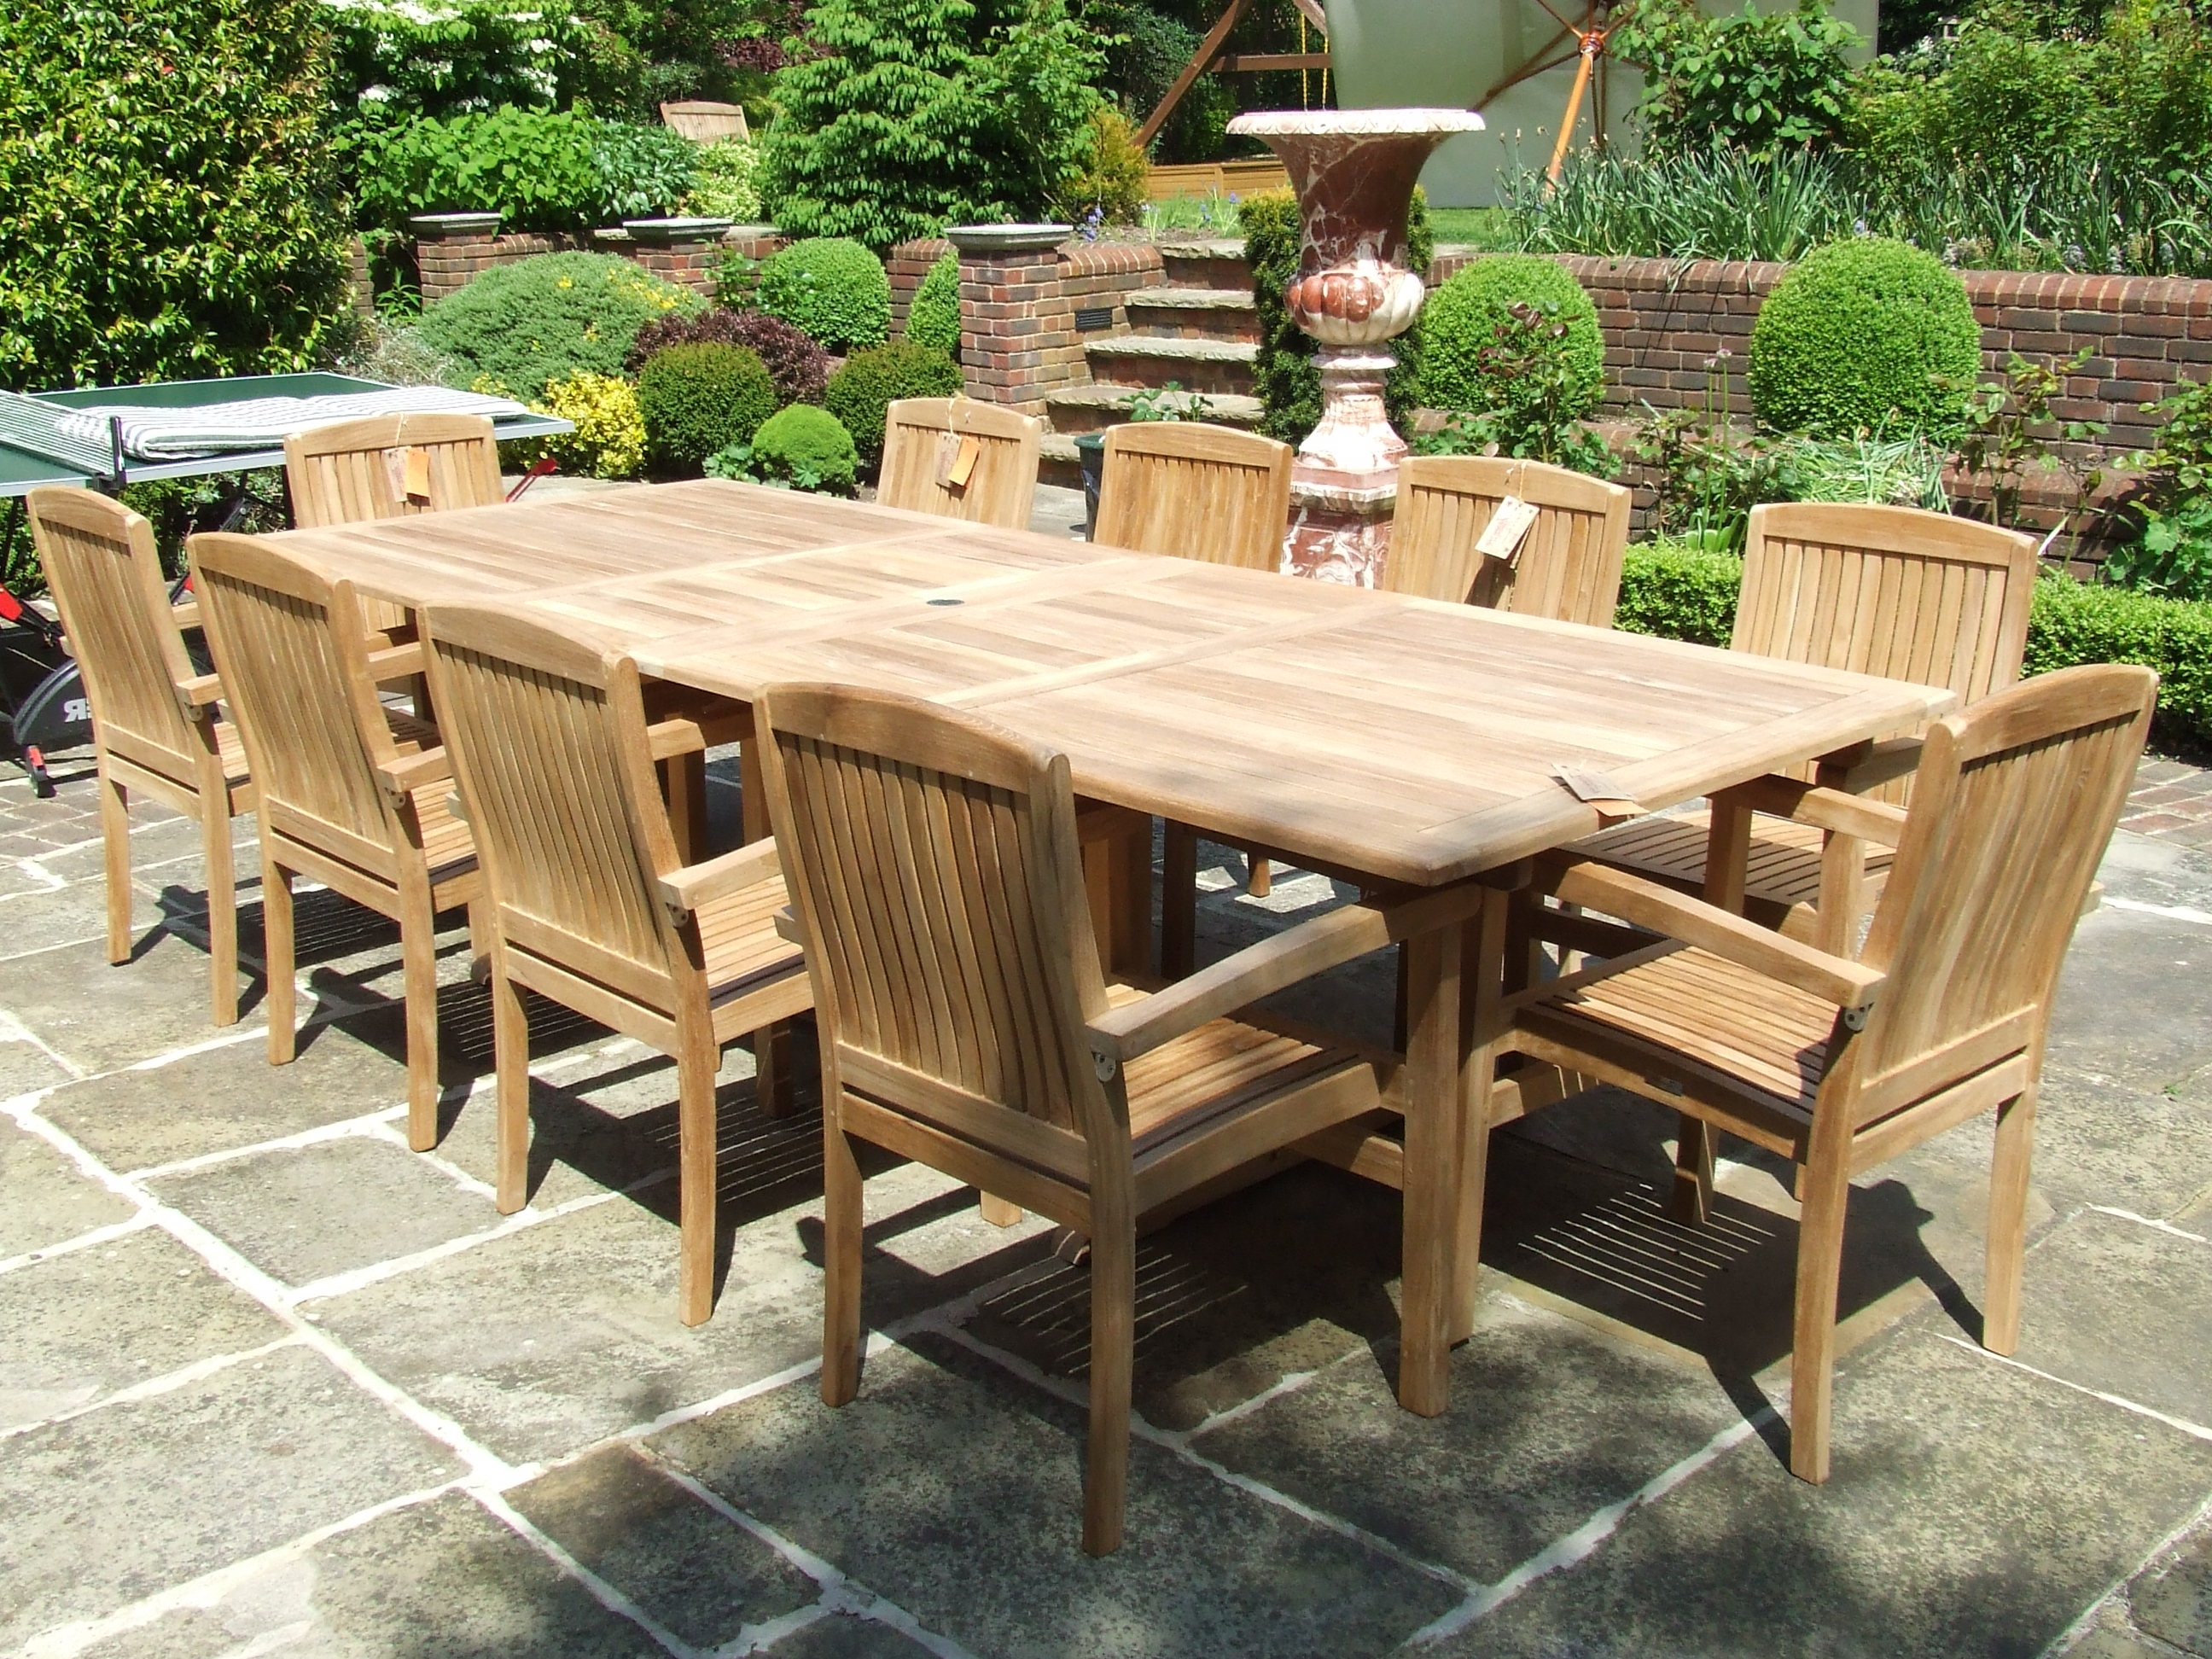 Garden Dining Tables Inside Newest Garden Dining Tables – Ujecdent (View 11 of 25)